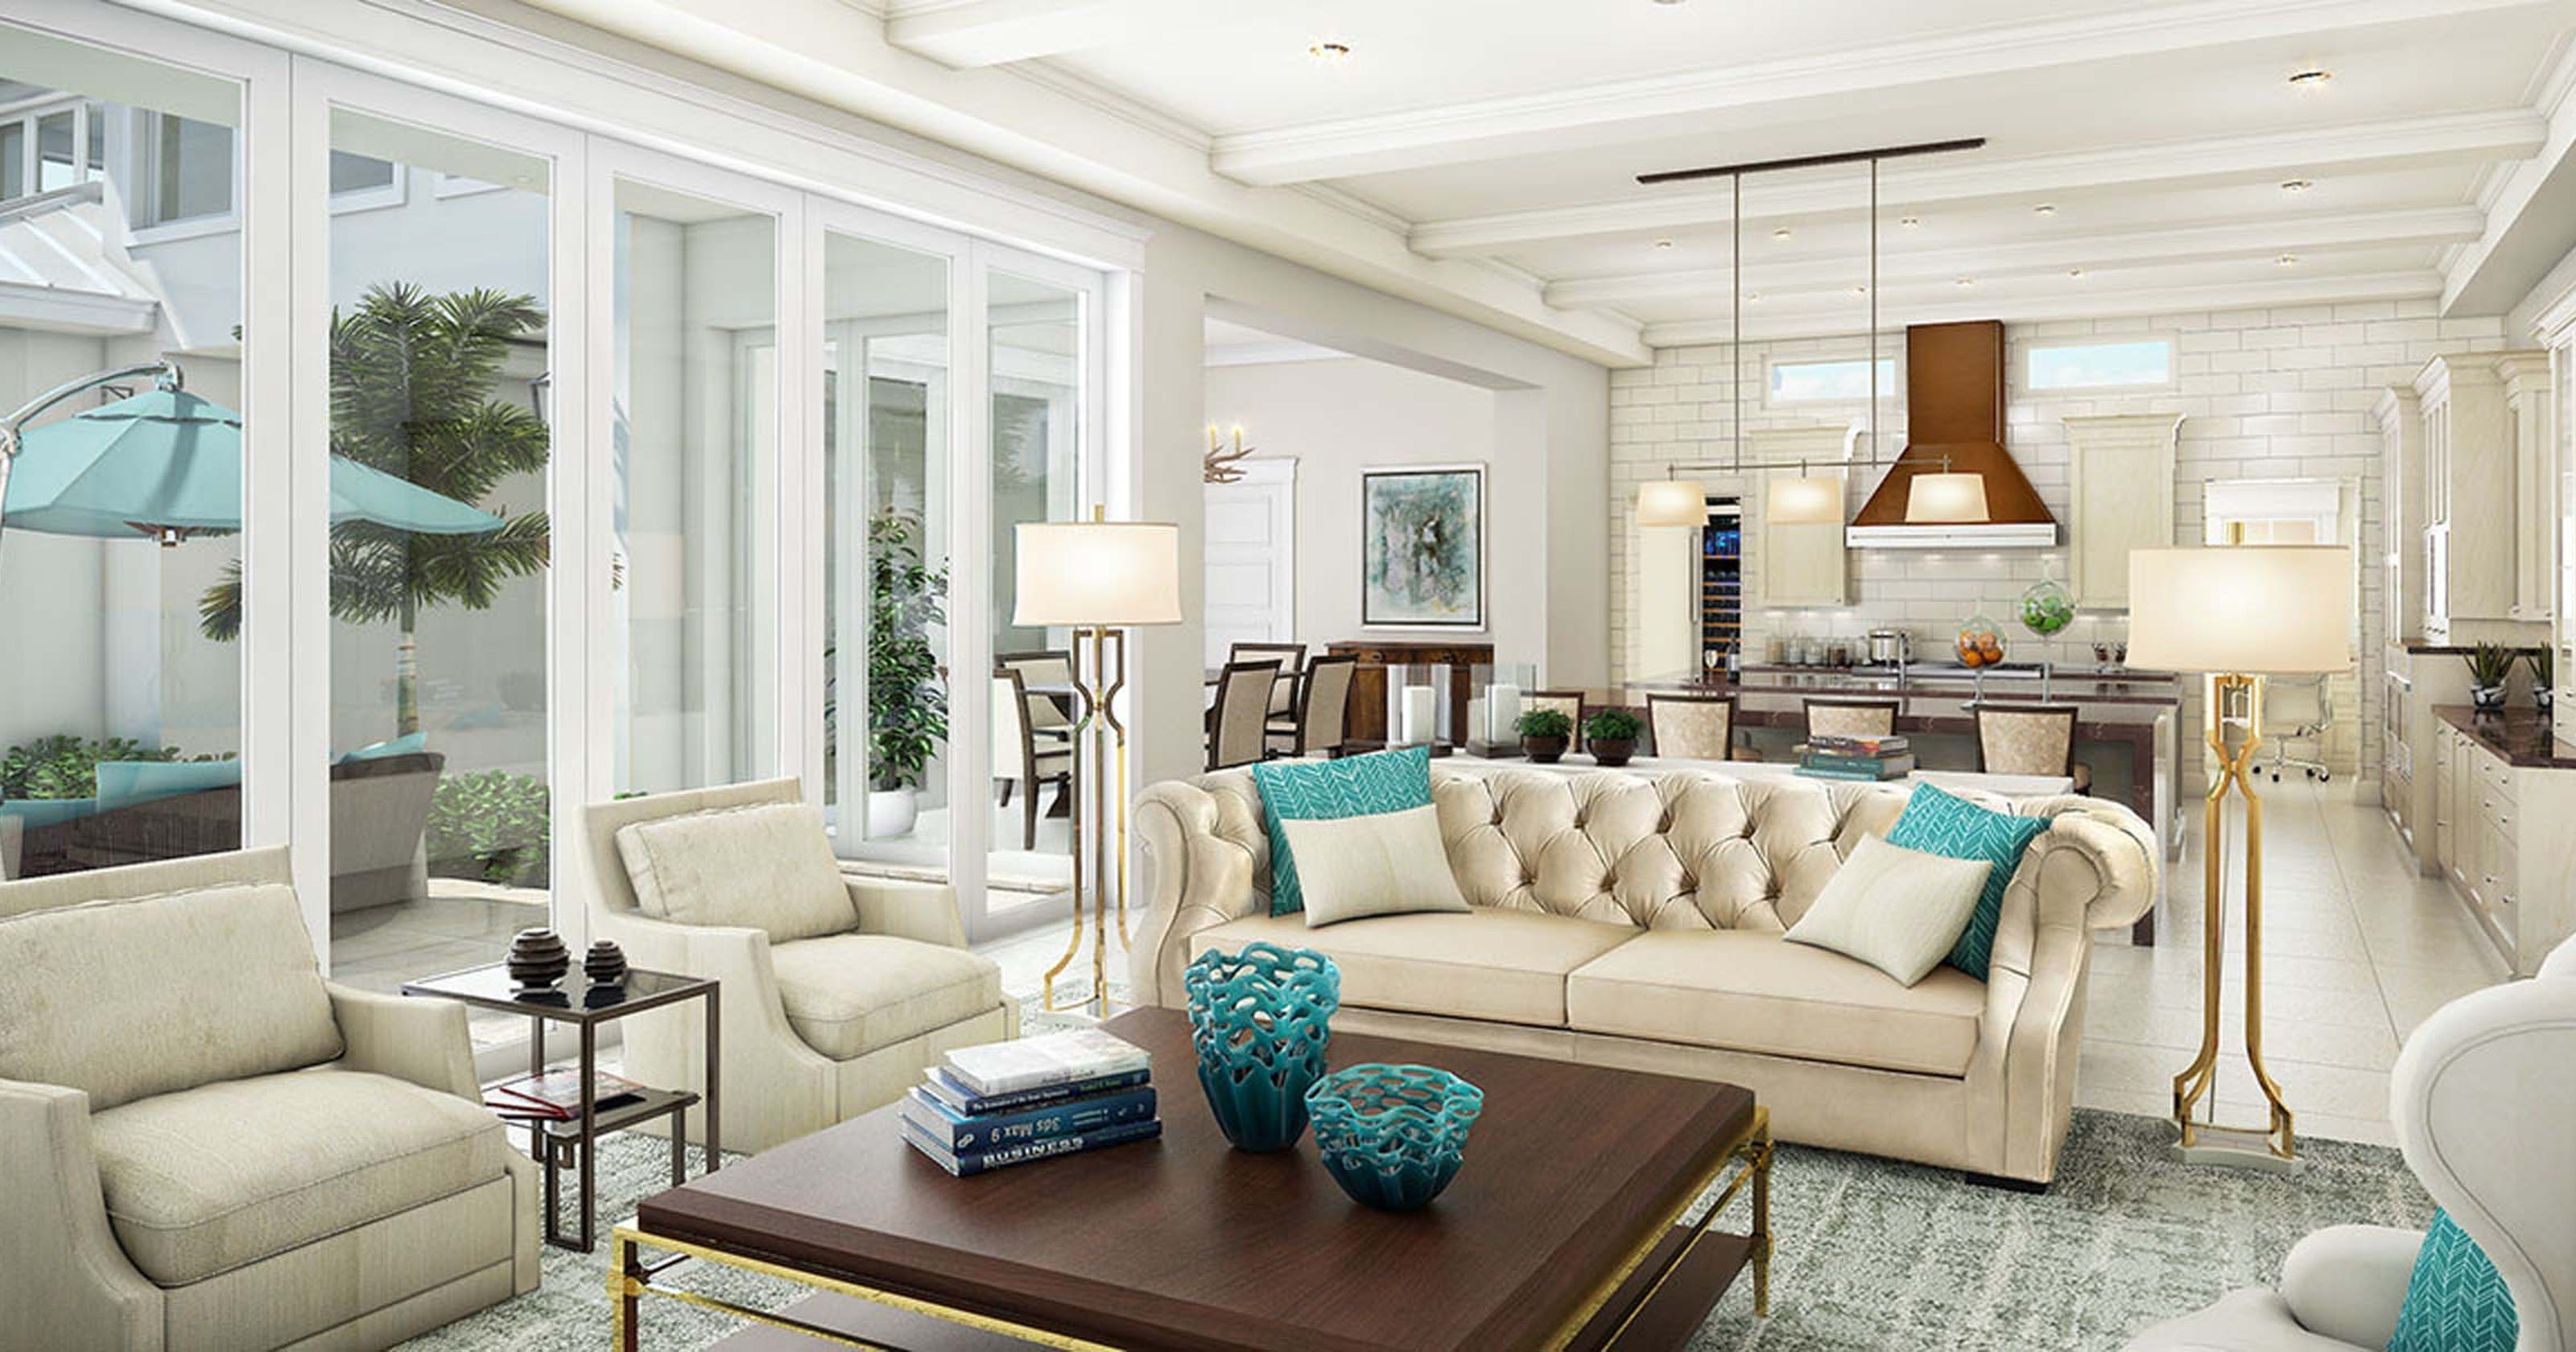 London Bay Homes selects Romanza Interior Design for Claremont model in Old Naples